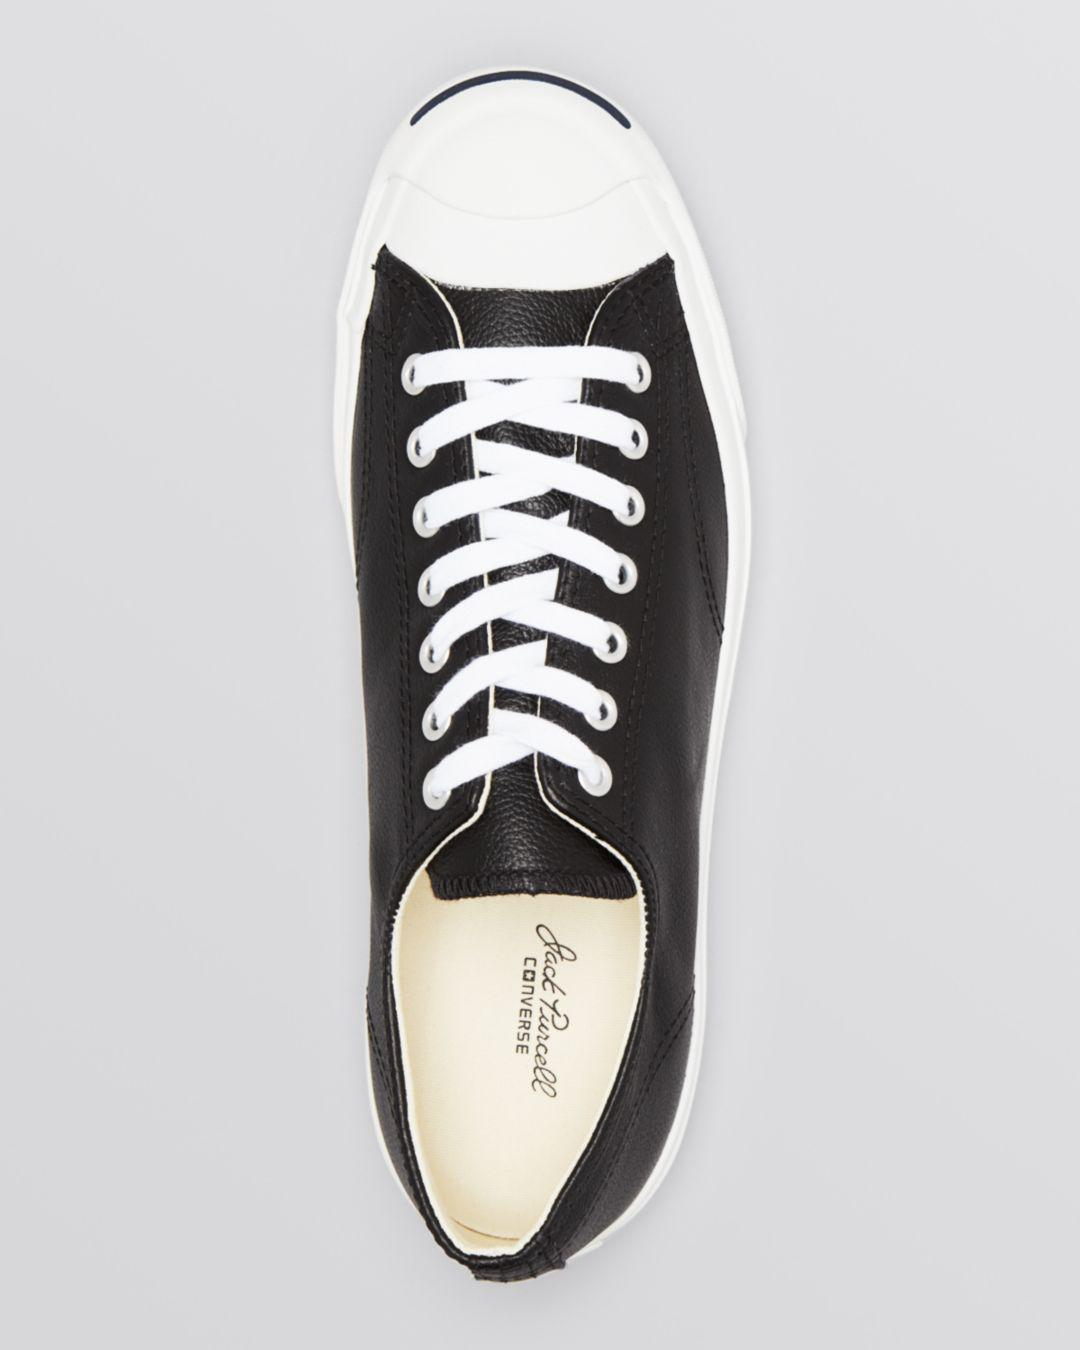 8042ca57982957 Lyst - Converse Men s Jack Purcell Leather Lace Up Sneakers in White for  Men - Save 43%